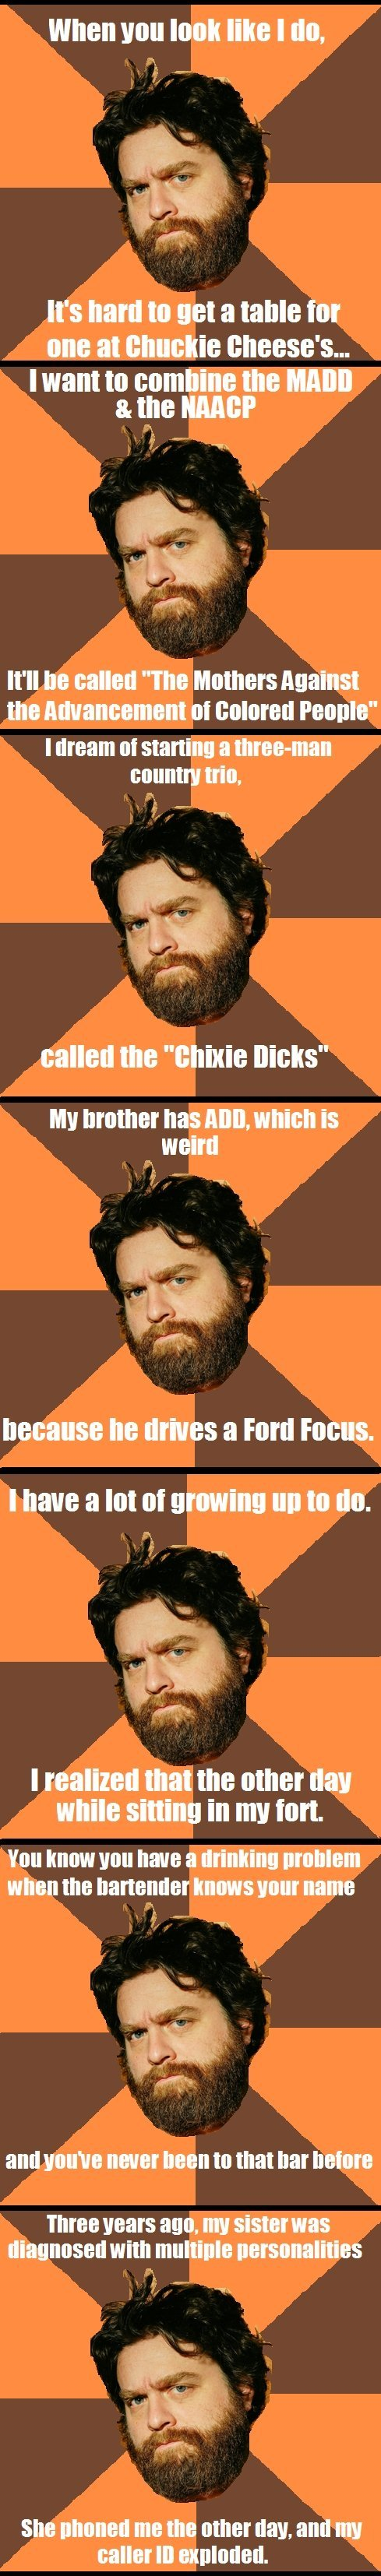 """zach galifianakis meme. . when you I I I II I I Will"""" com 8. III I (littlle I III SIR"""" III?! mill Milli! II In III!"""" Tti II I I VIII"""" III"""" ll if g. I love Zach Galifianakis! And i want to thank you for using jokes from his great stand-up and not lines from his movies that everyone knows!"""